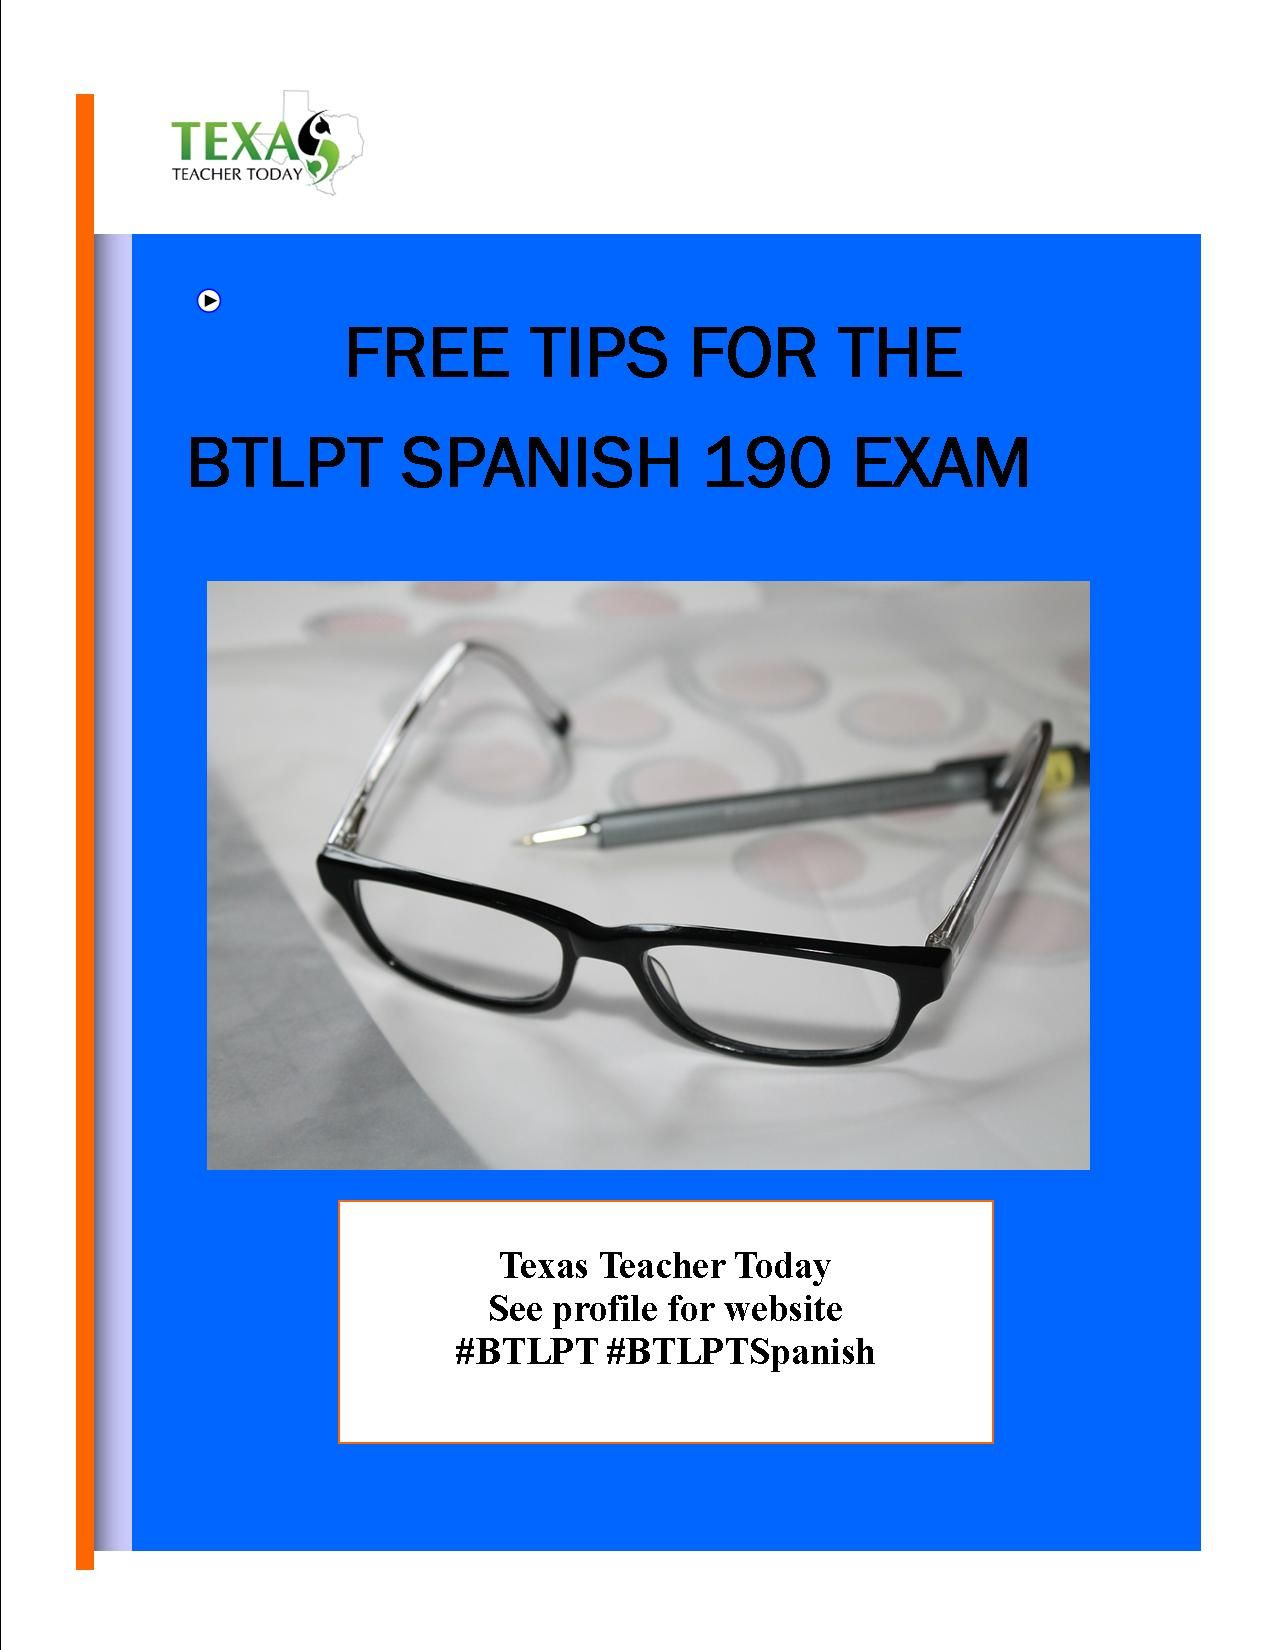 Free tips to pass the btlpt spanish 190 exam including tips to texas teacher today tips and study material for the btlpt spanish lote spanish bilingual education supplemental core subjects and english language arts and 1betcityfo Gallery